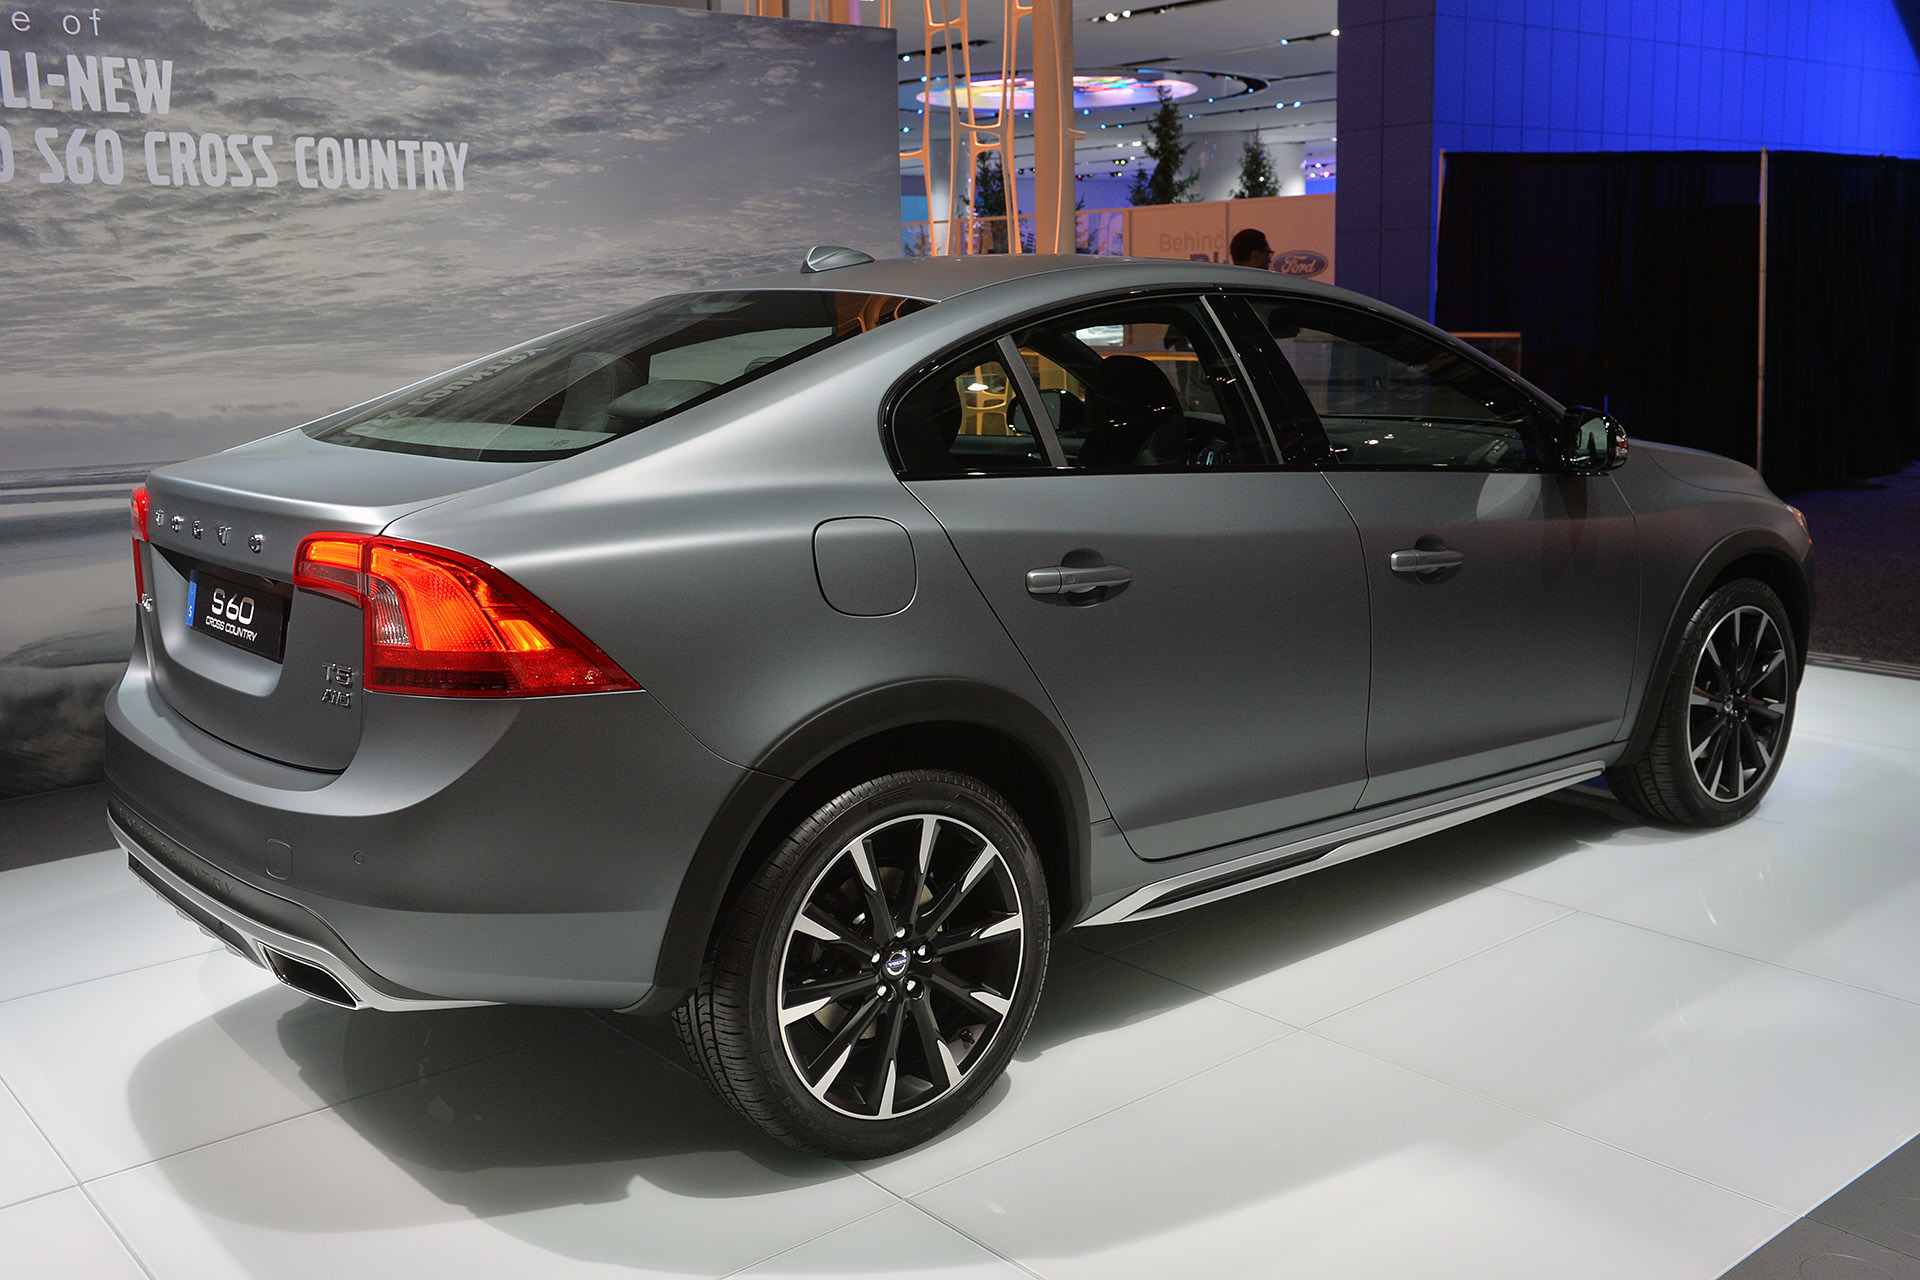 2015 volvo s60 cross country detroit 2015 photo gallery autoblog. Black Bedroom Furniture Sets. Home Design Ideas